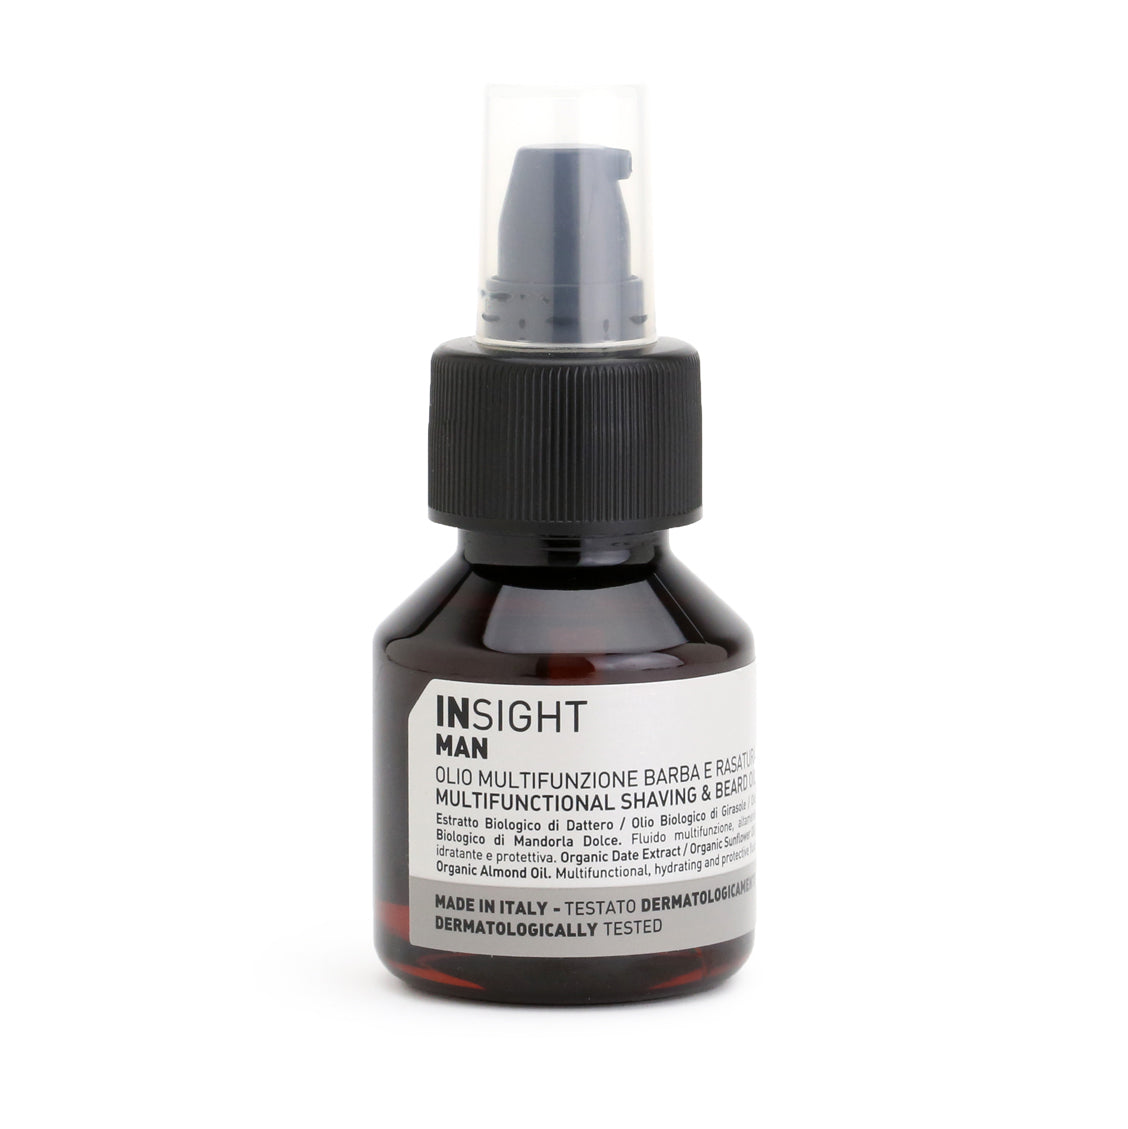 InSight Multifunctional Shaving and Beard Oil 50ml